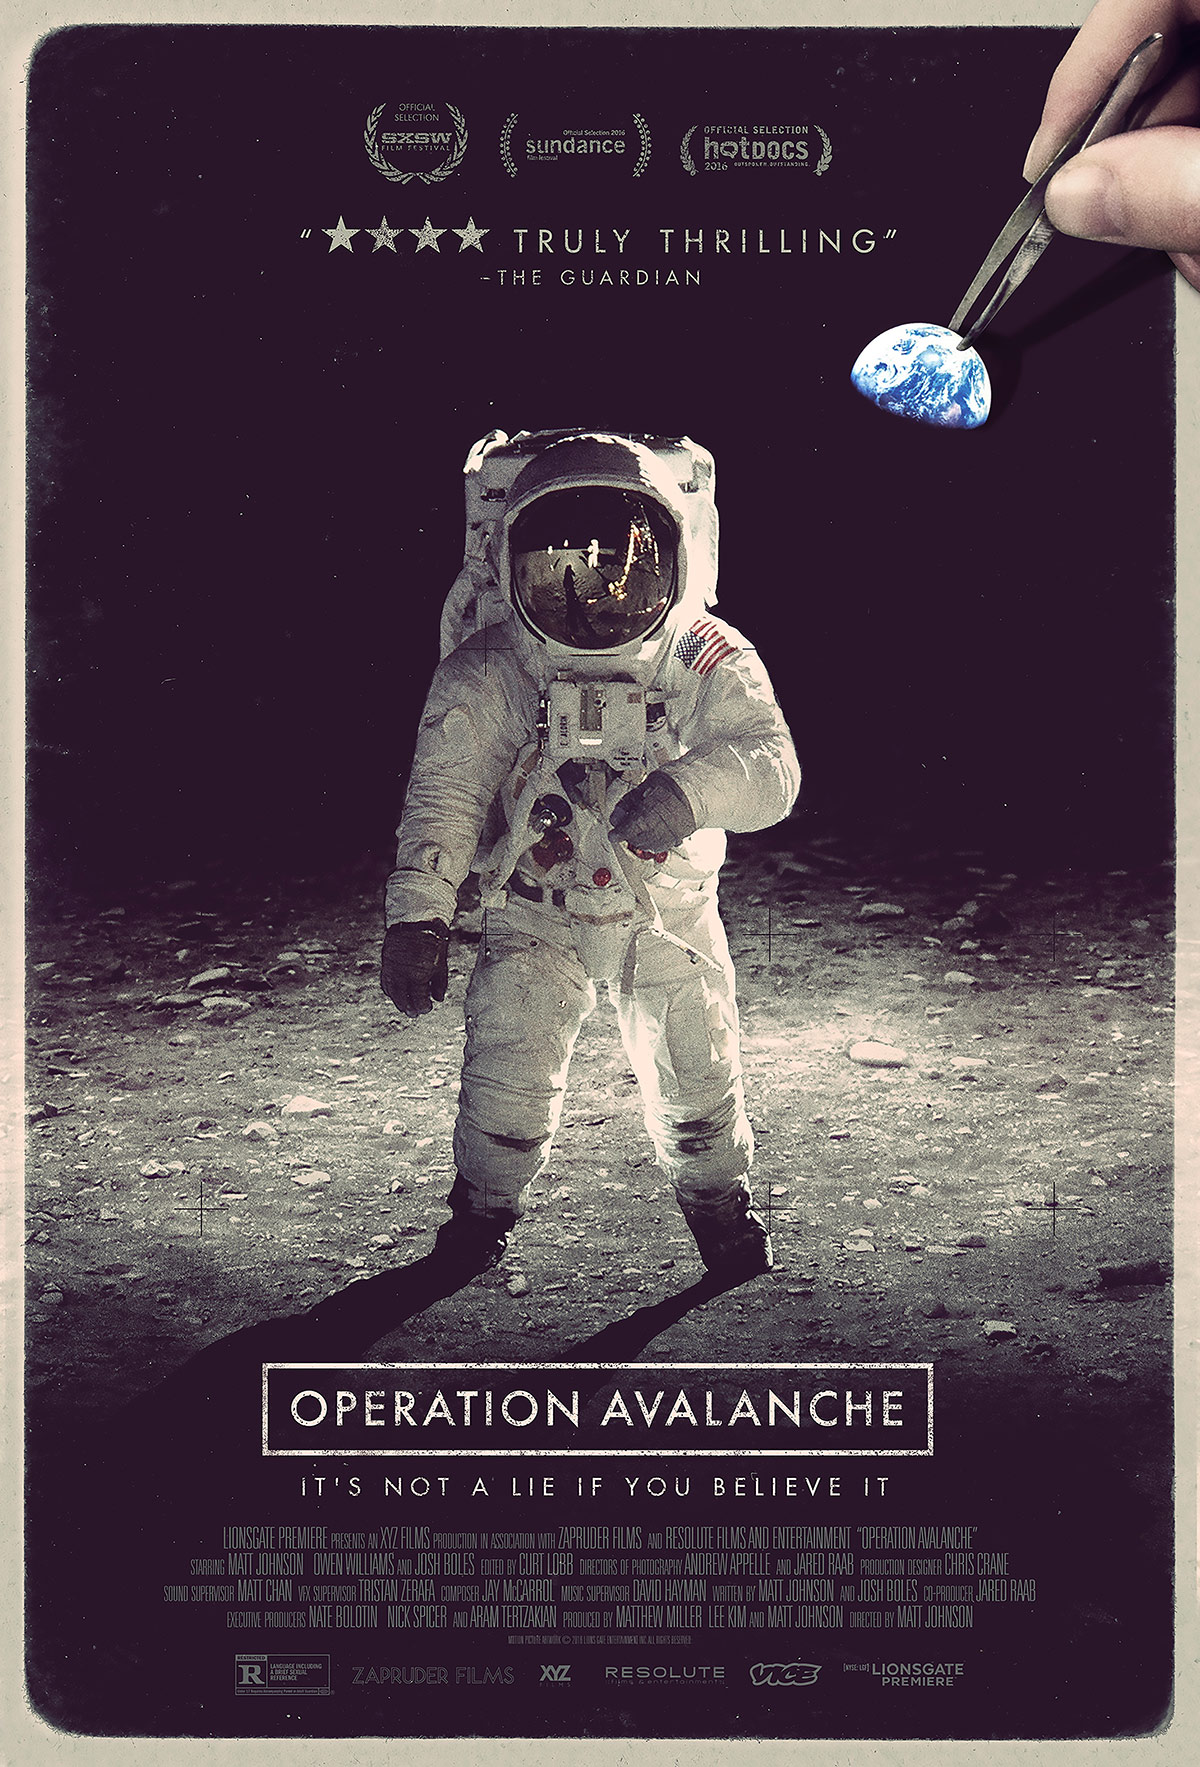 operation-avalanche-movie-poster-images